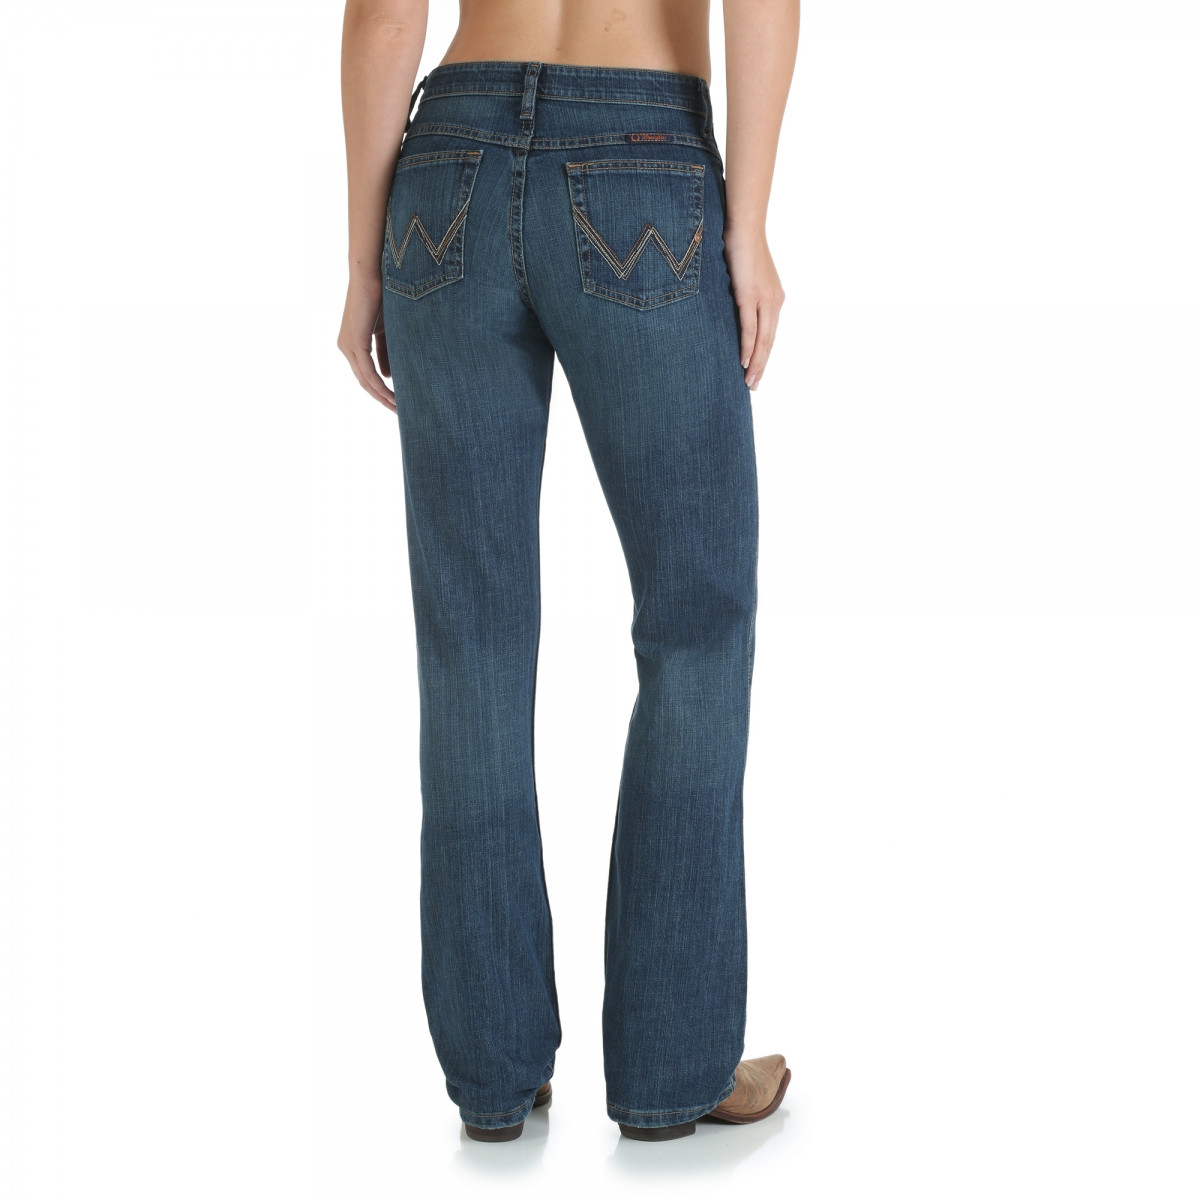 9a29b001 ... Wrangler Womens QBaby Tuff Buck Ultimate Riding Western Jean. Hover  over image to zoom. WRQ20TB back